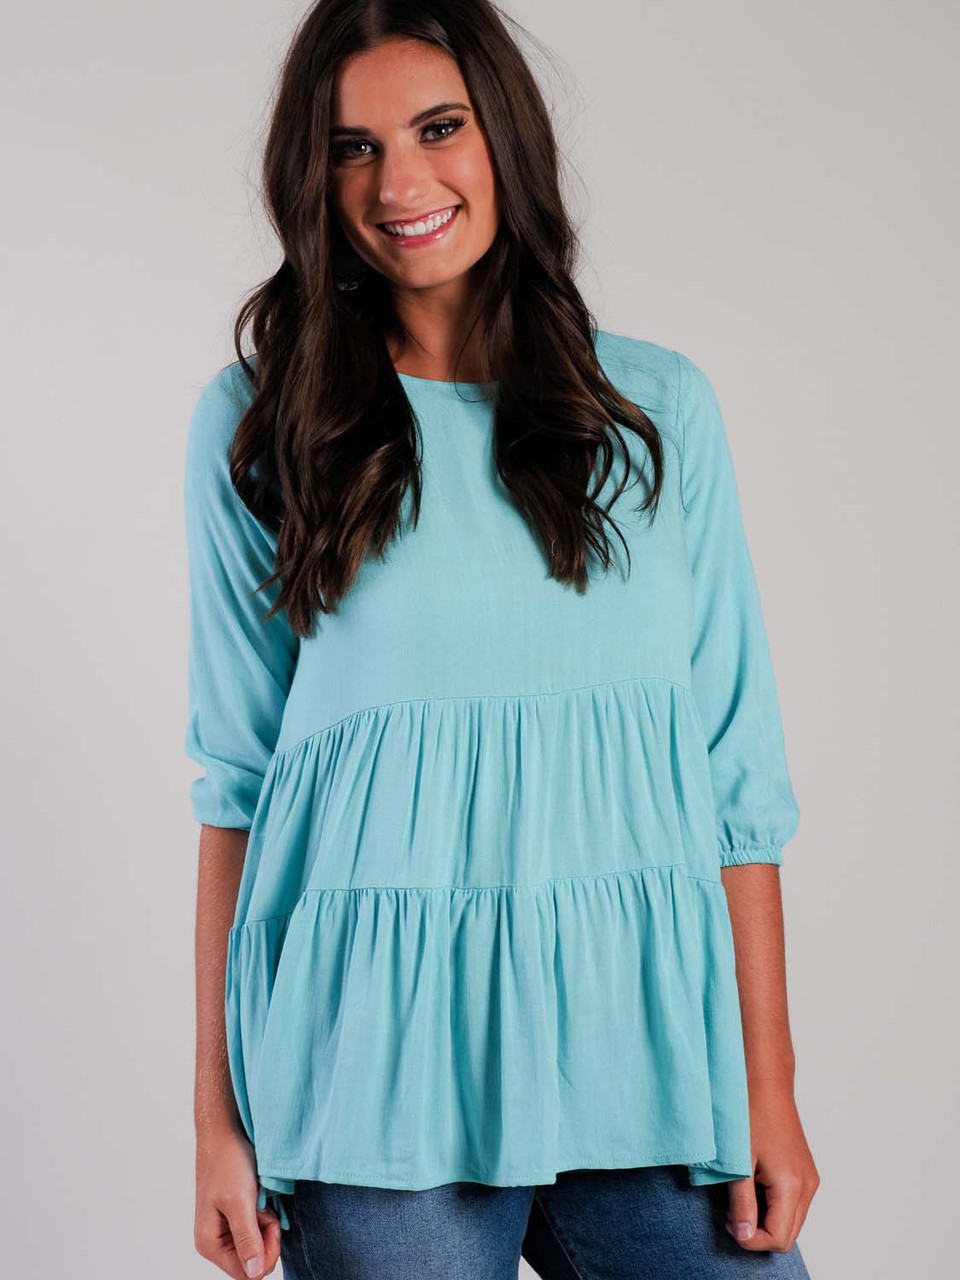 Mint Tiered Top